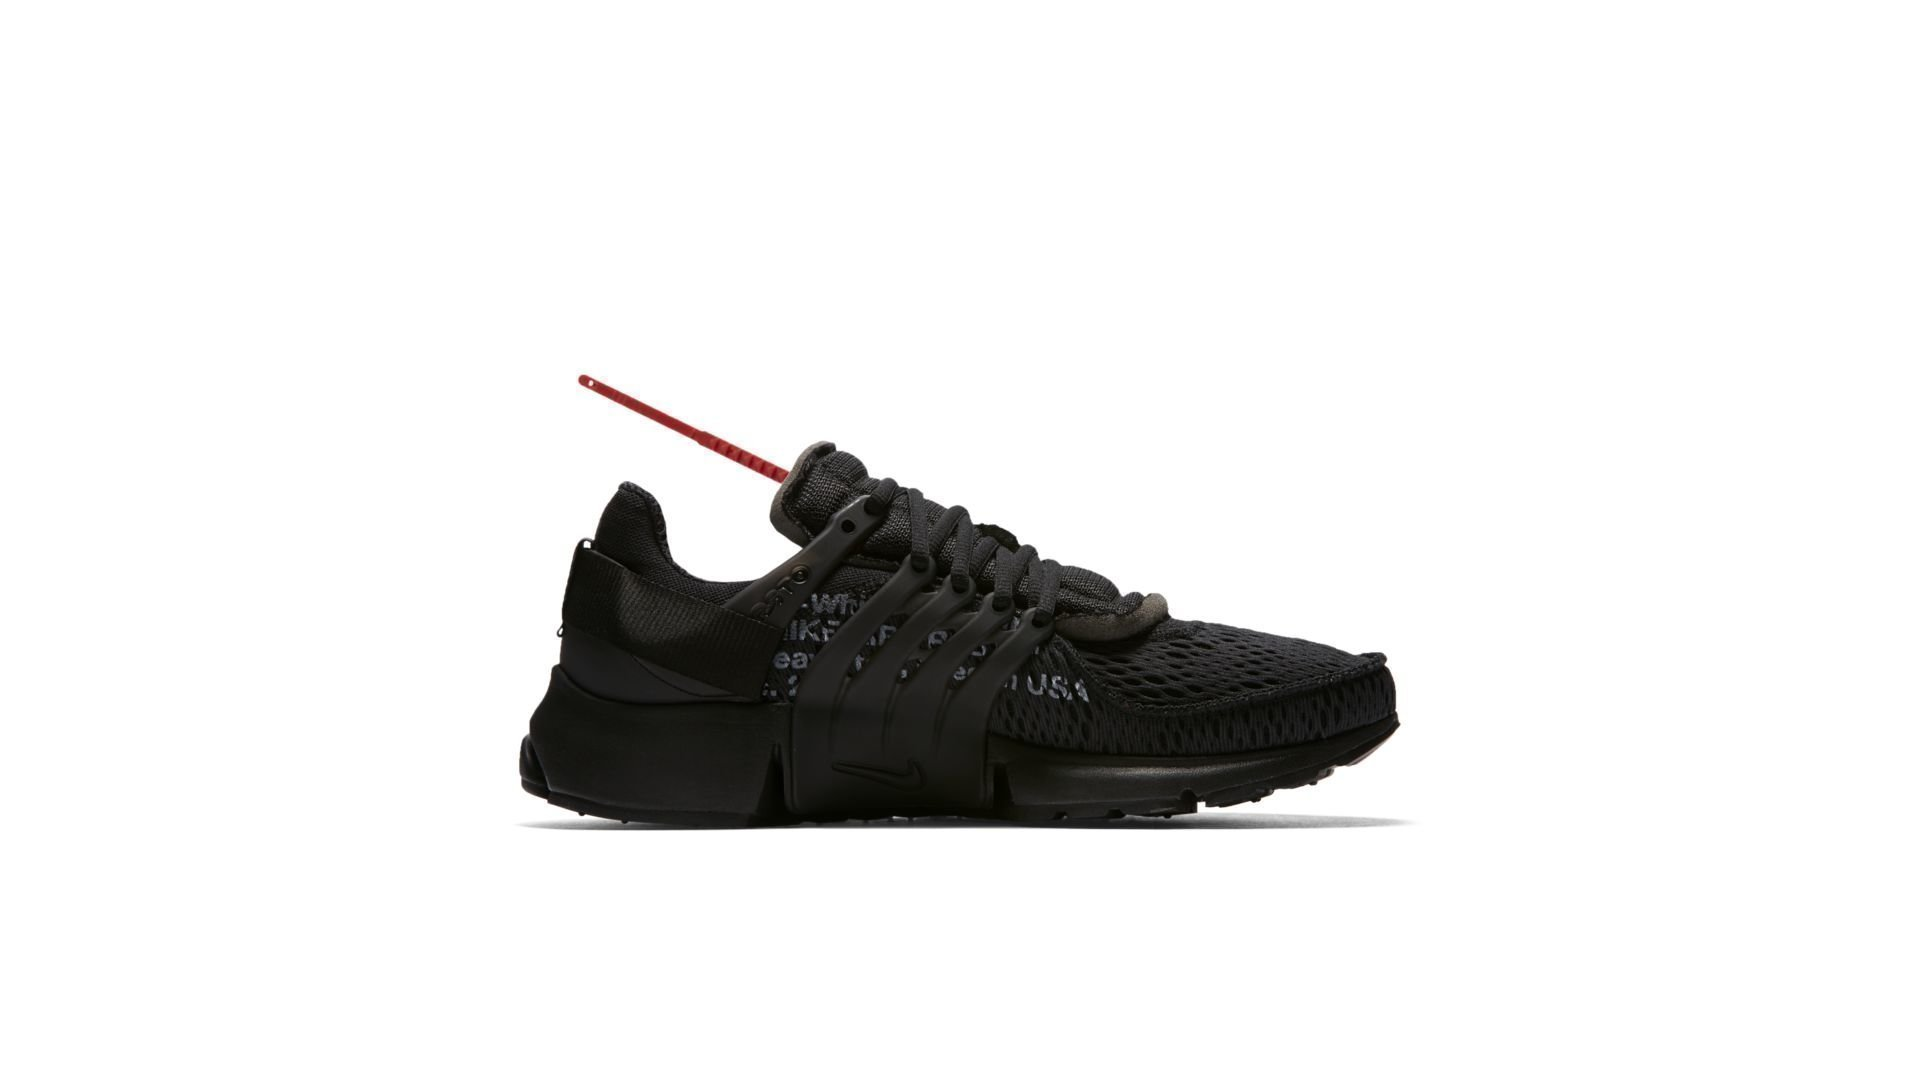 Off-White x Nike Air Presto 'Black' (AA3830-002)